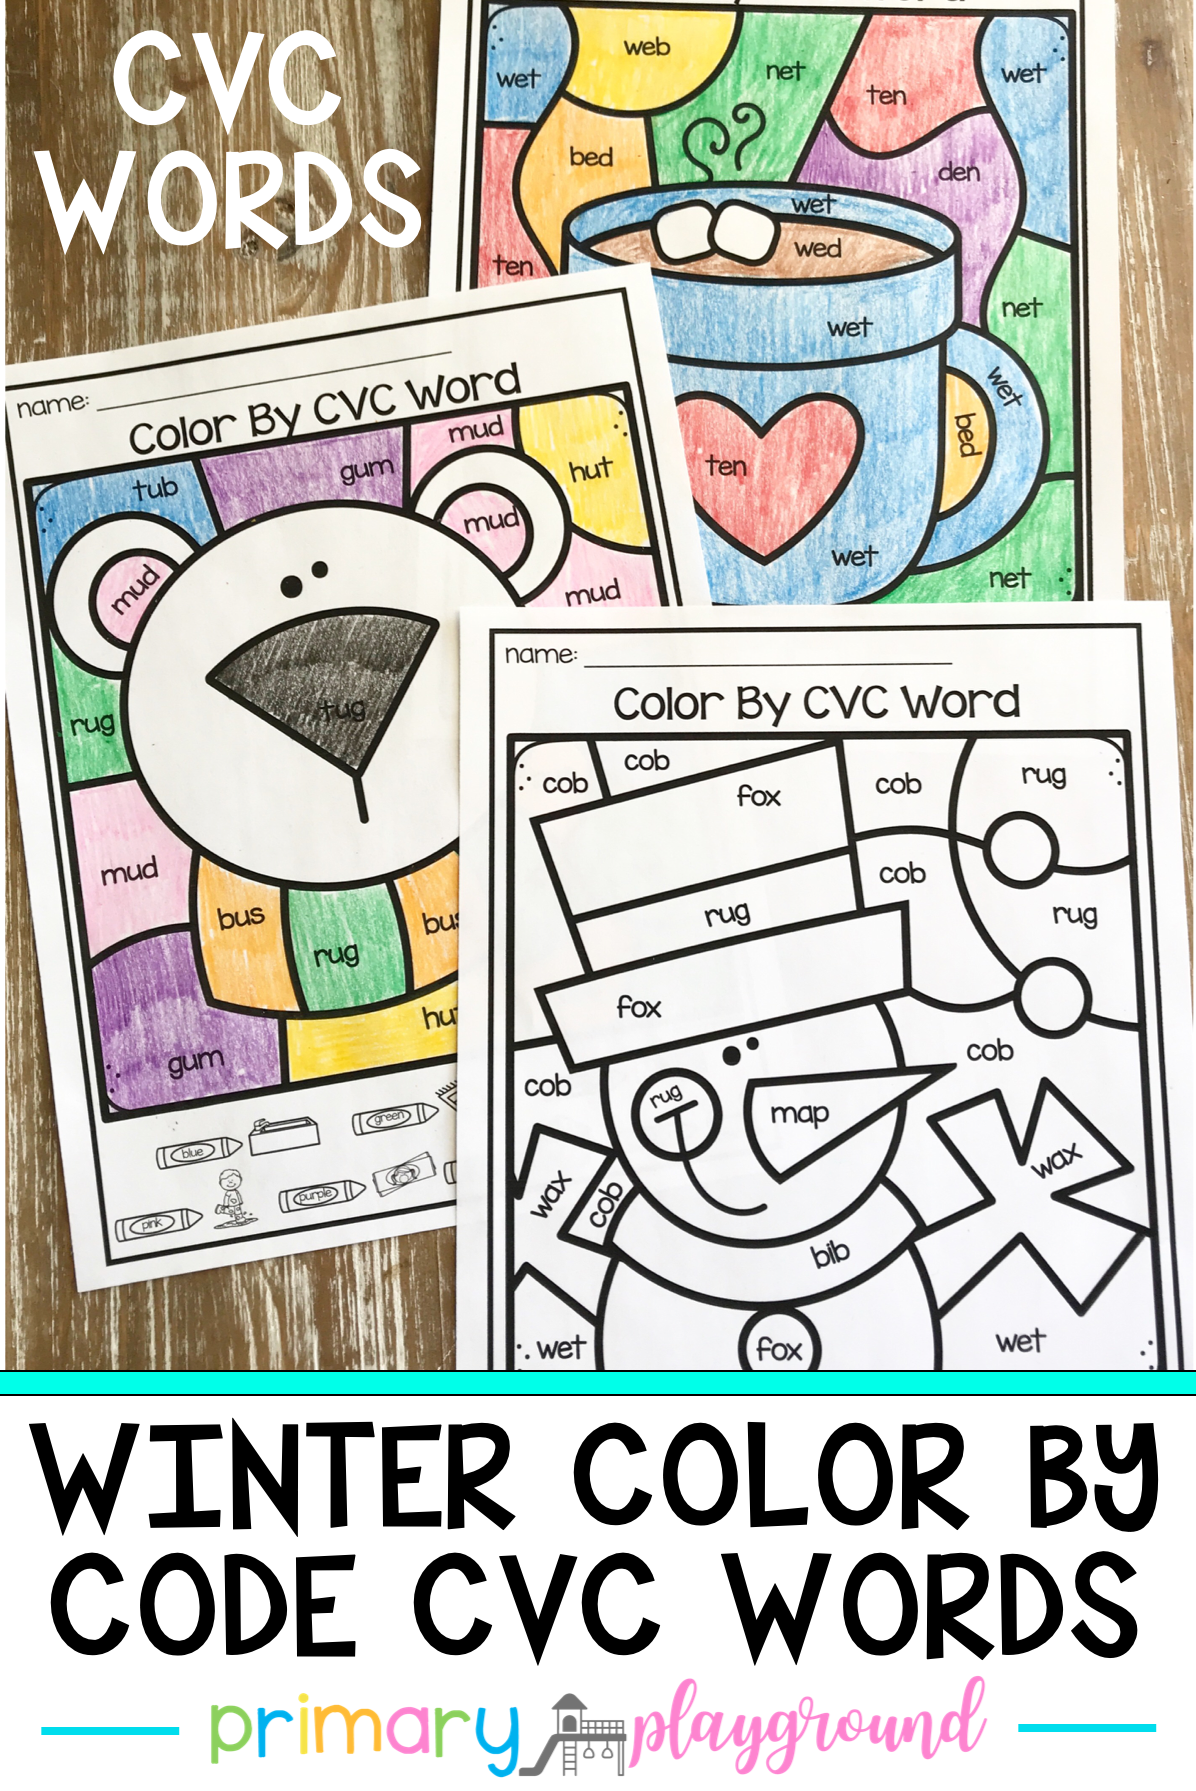 Winter Color By Code Cvc Words In